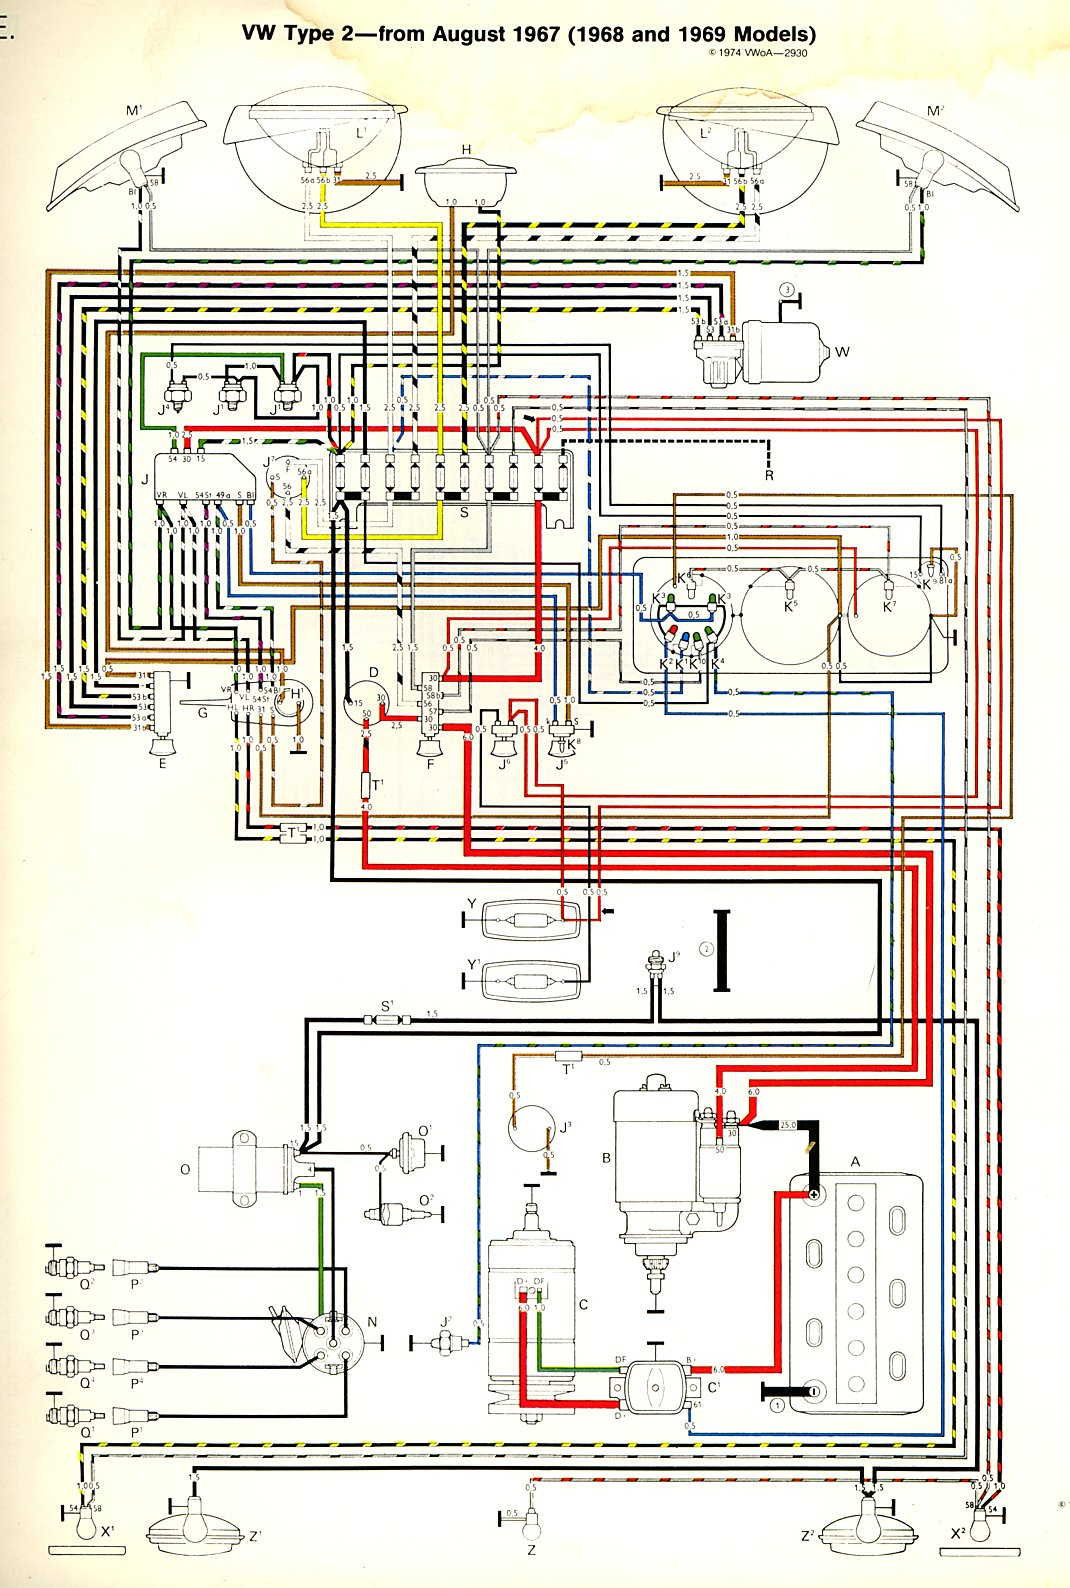 baybus_6869a bus wiring diagram vw wiring harness diagram \u2022 wiring diagrams j vw type 3 wiring harness at crackthecode.co